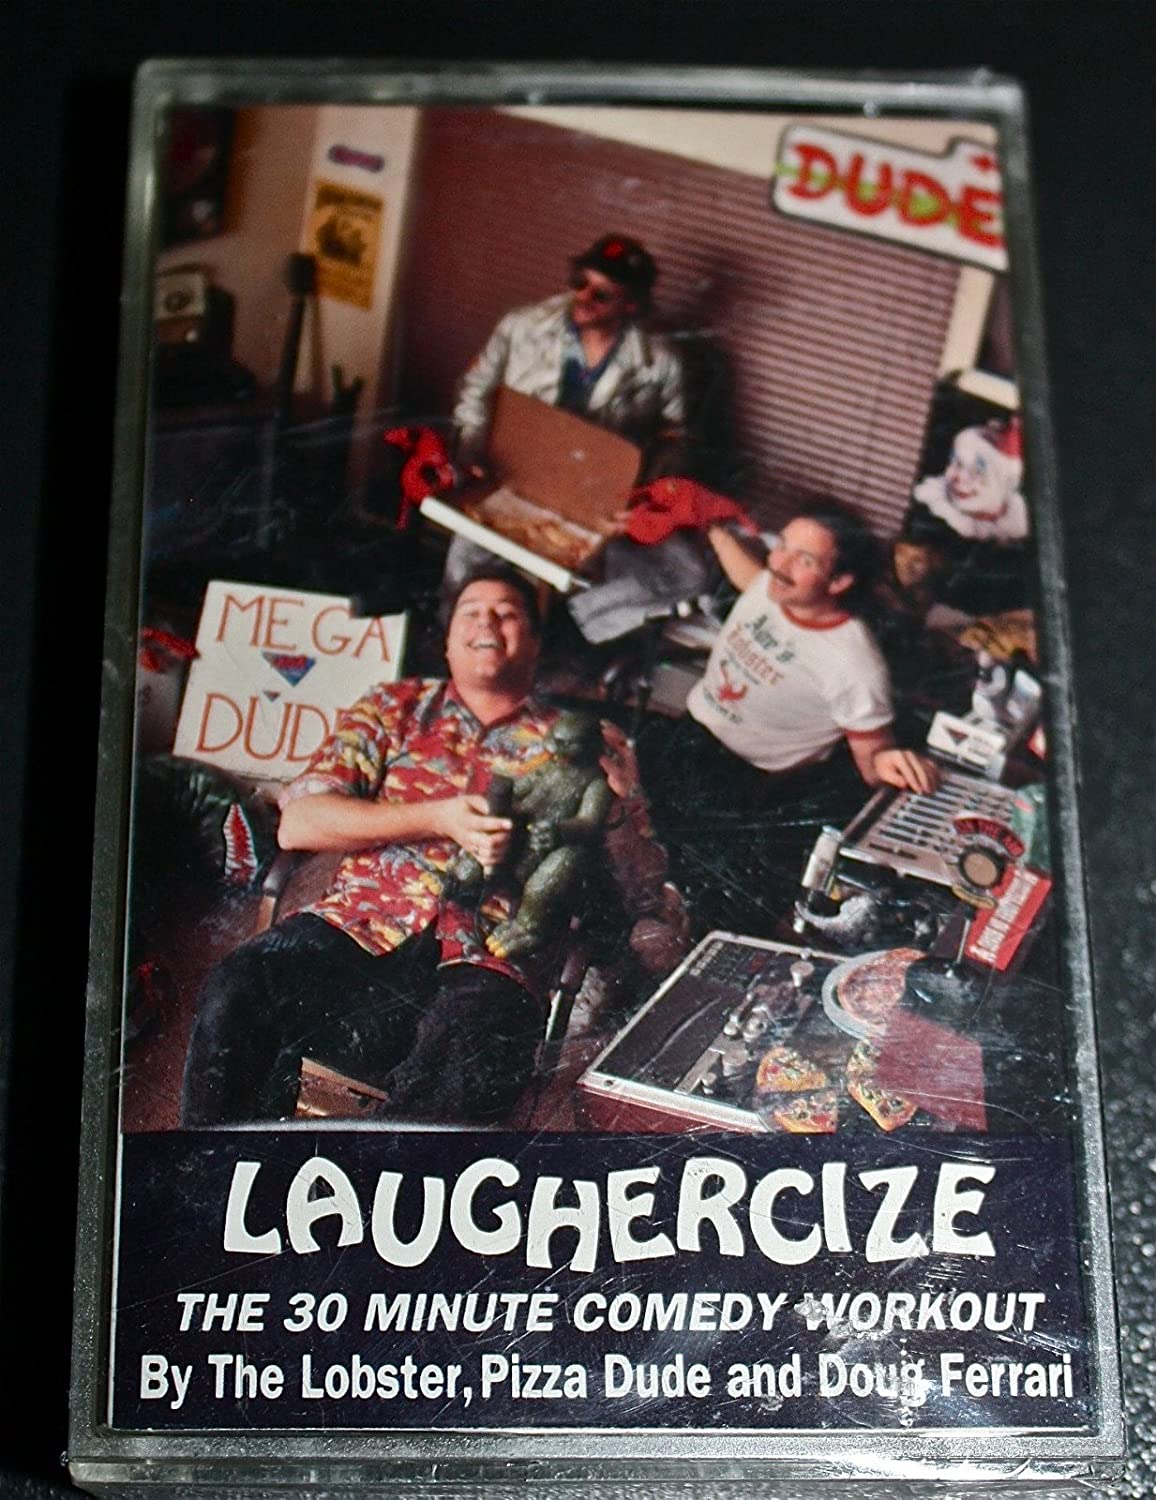 LAUGHERCIZE The 30 Minute Comedy Workout by The Lobster, Pizza Dude and Doug Ferrari [Audio Cassette]